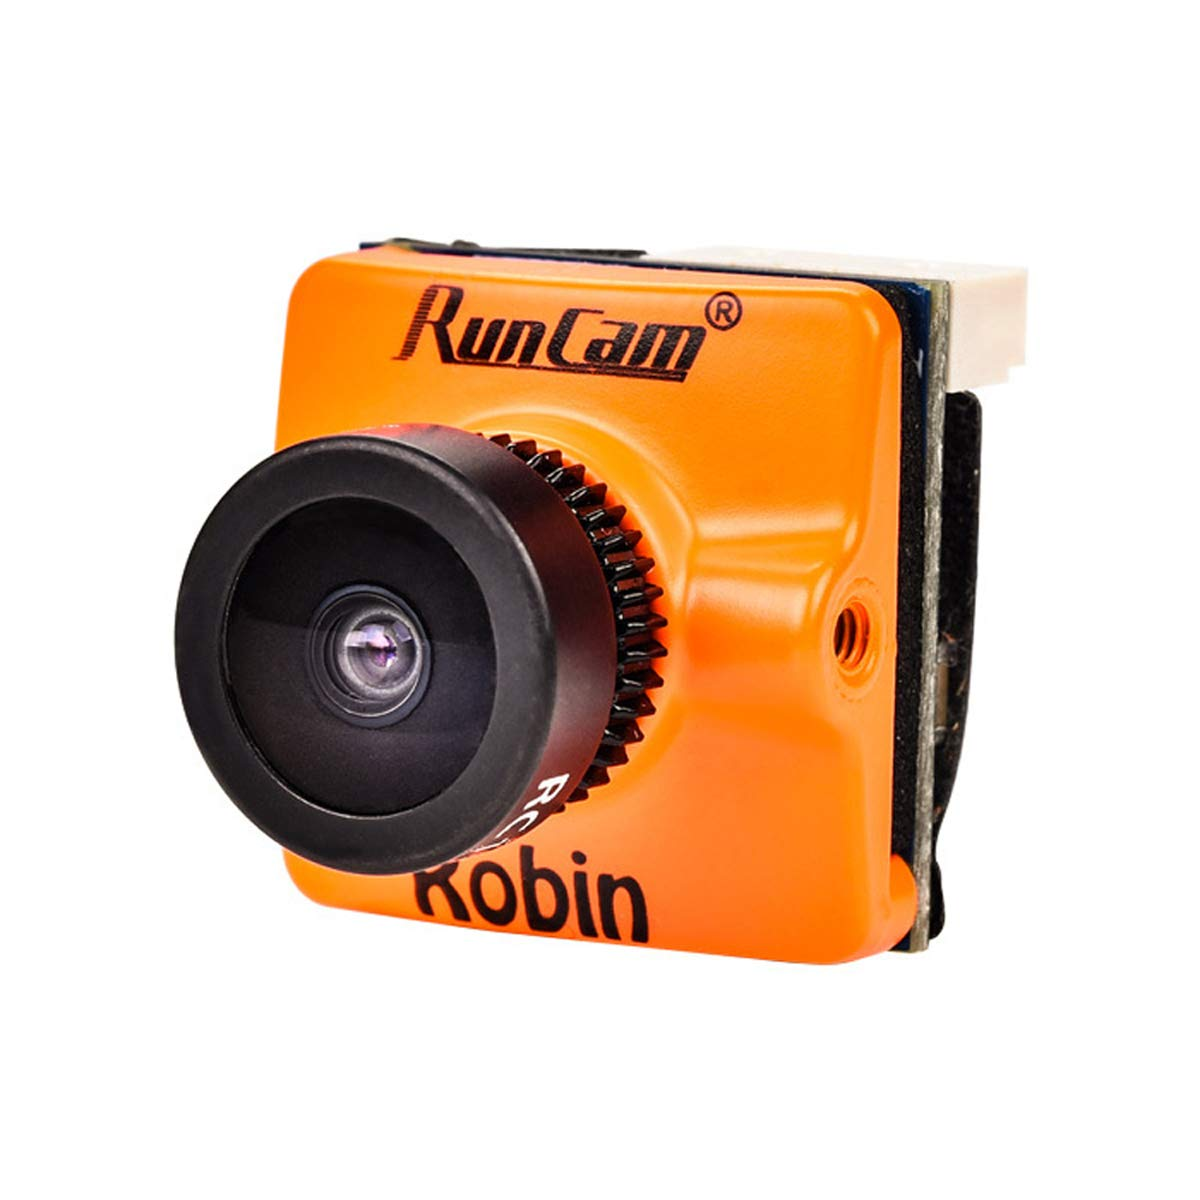 RunCam Robin FPV Camera 700TVL 1.8mm Lens PAL NTSC Switchable 1/3inch CMOS 4:3 FOV 160 Degree Micro Mini FPV Camera for FPV Quadcopter Racing Drone Orange by Crazepony